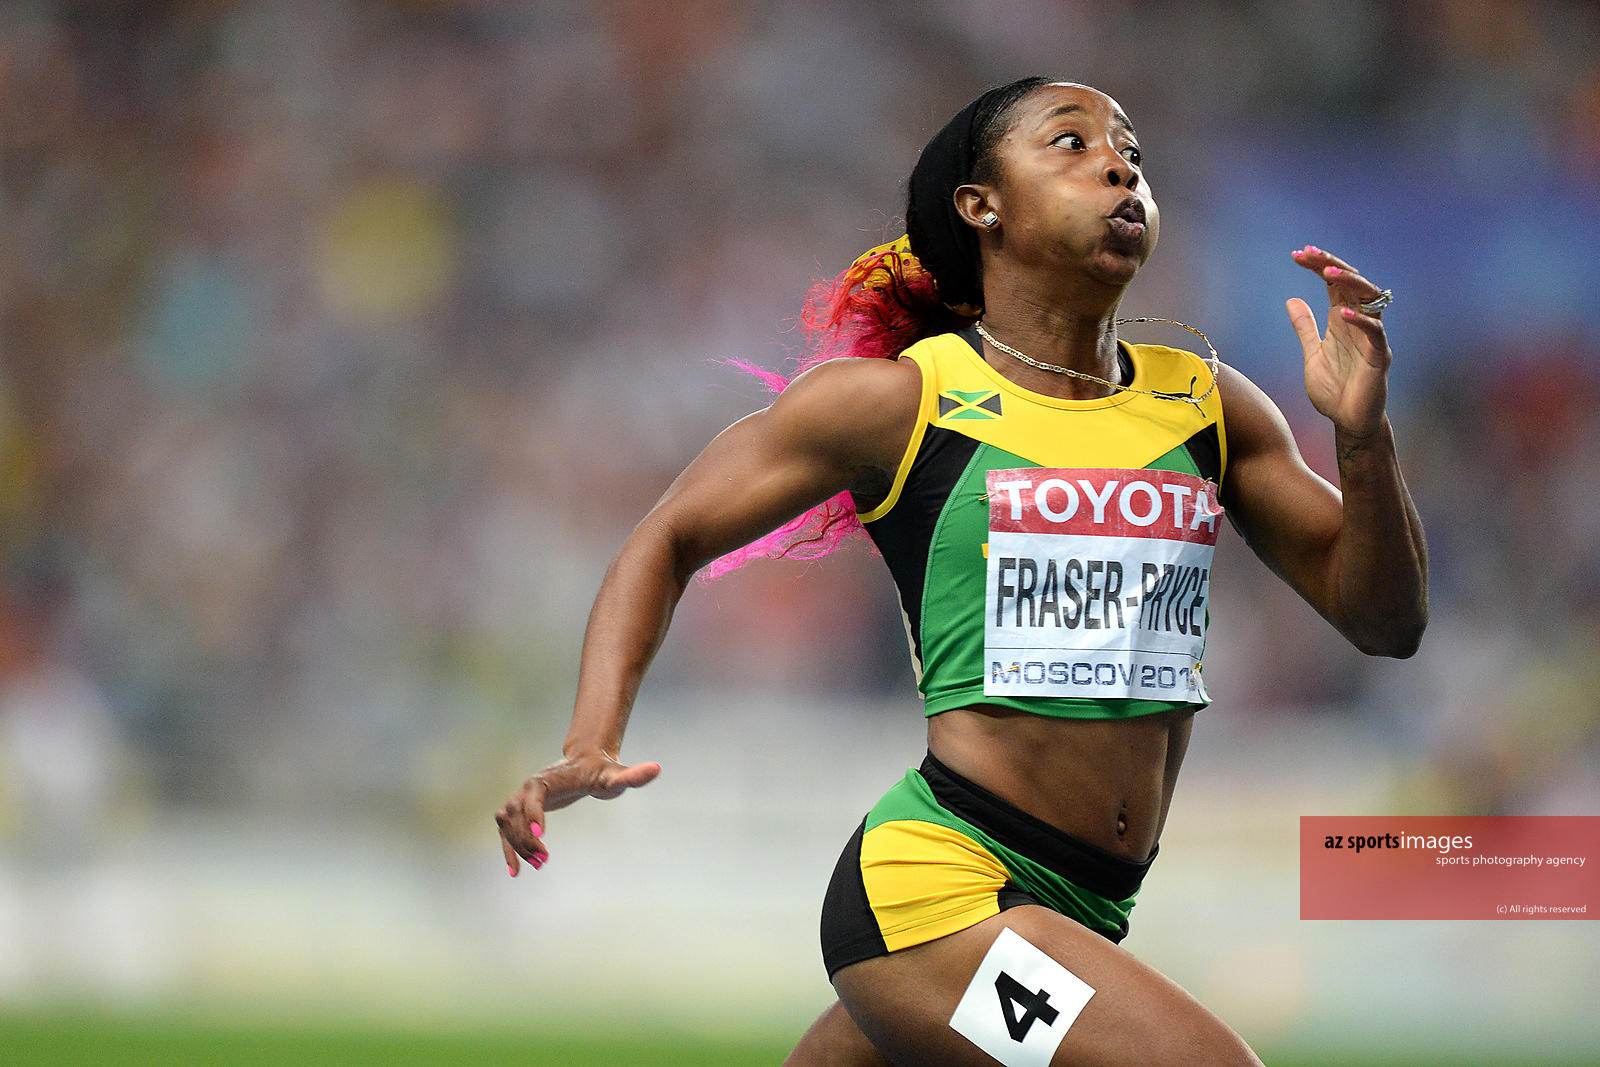 Jamaican Fraser Pryce  the new World Champion 2013